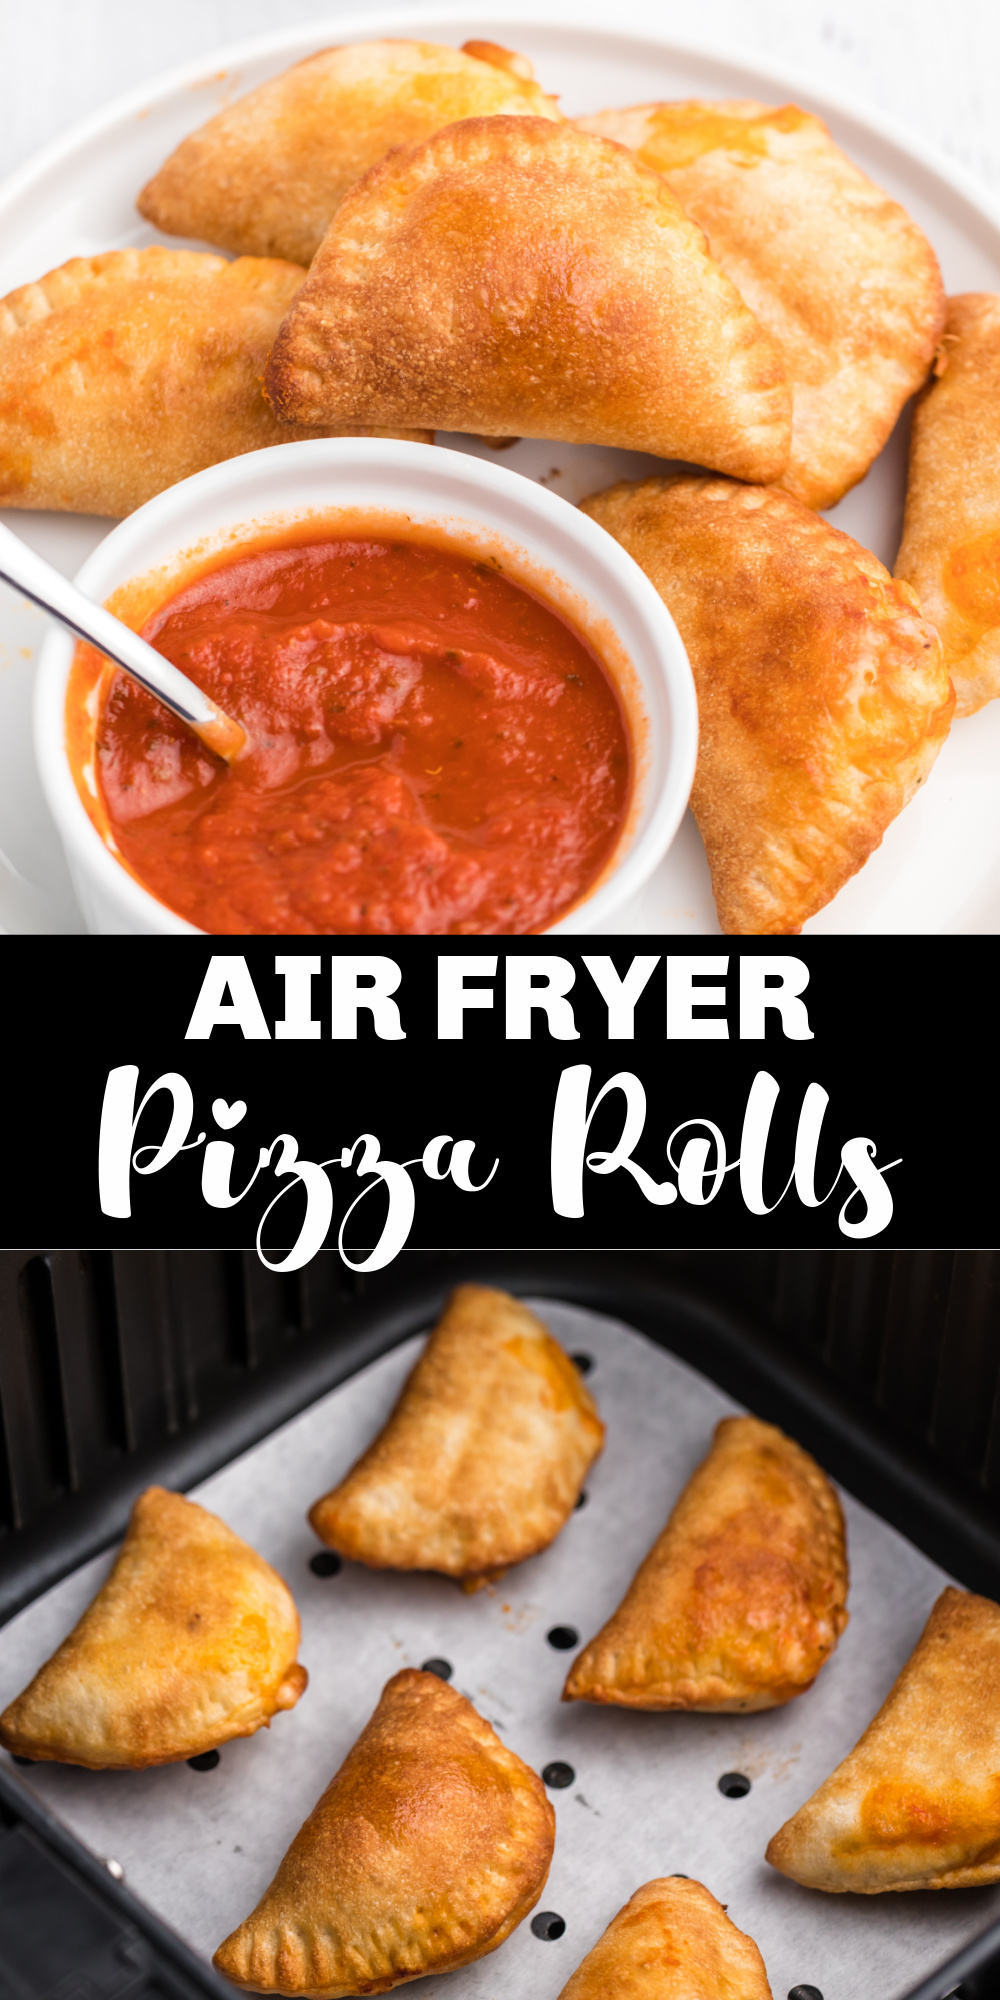 These easy Air Fryer Pizza Rolls are perfectly crispy on the outside and warm and delicious on the inside. We share how to make delicious homemade pizza rolls, as well as how to cook them from frozen. All cooked and ready in just 6 minutes with the Air Fryer!